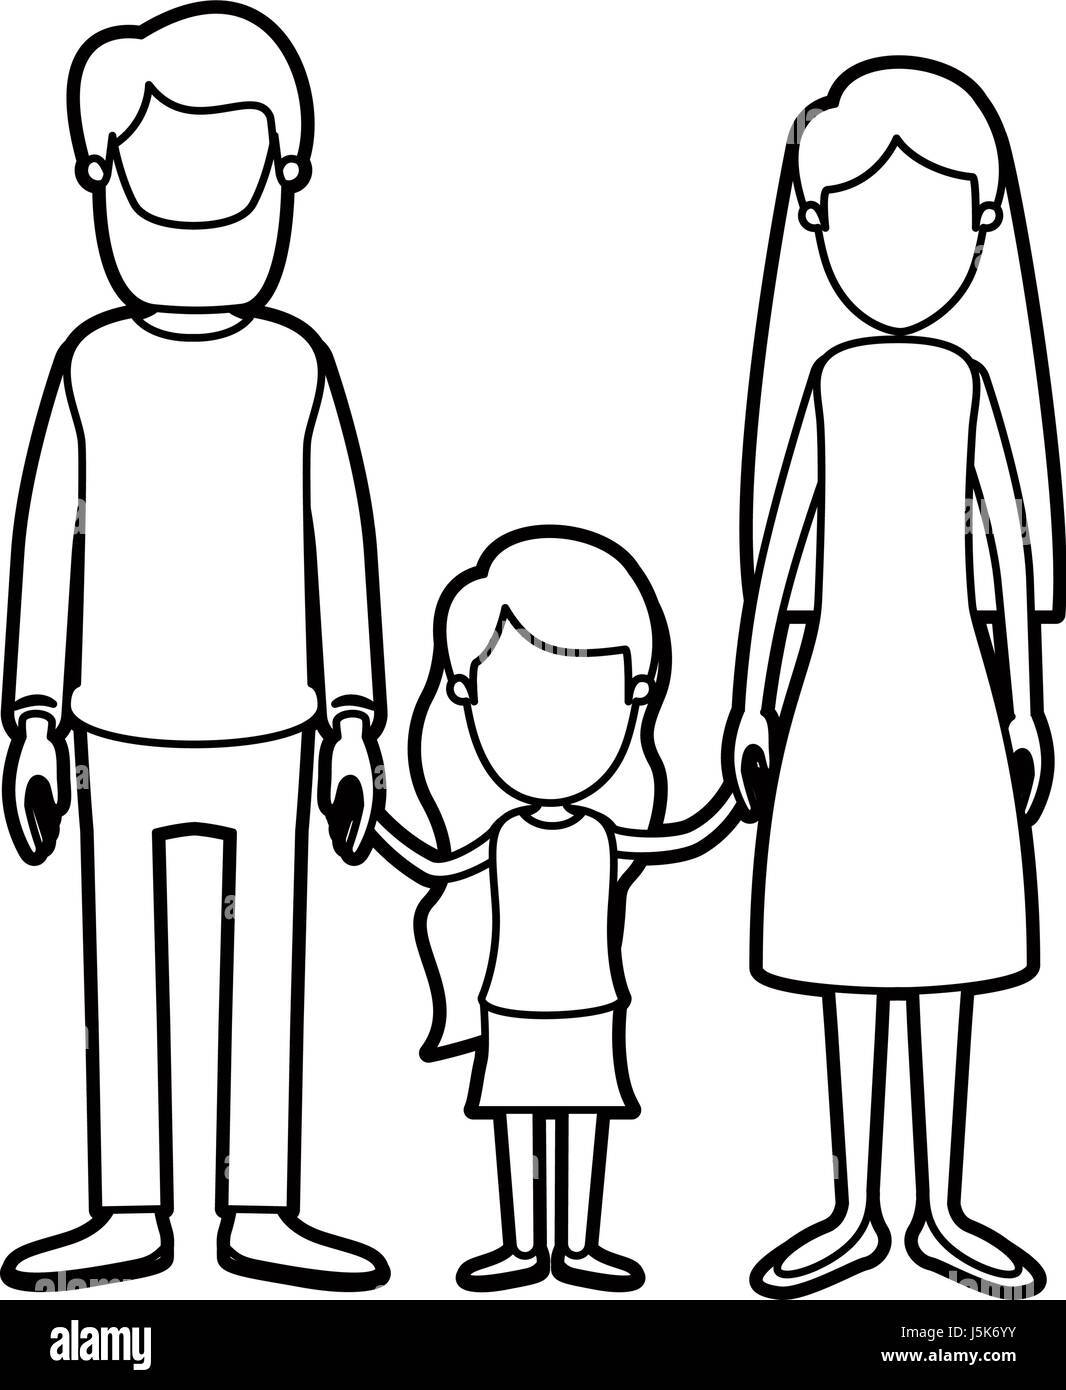 black thick contour caricature faceless family with father bearded and mom with long hair with little girl taken - Stock Image